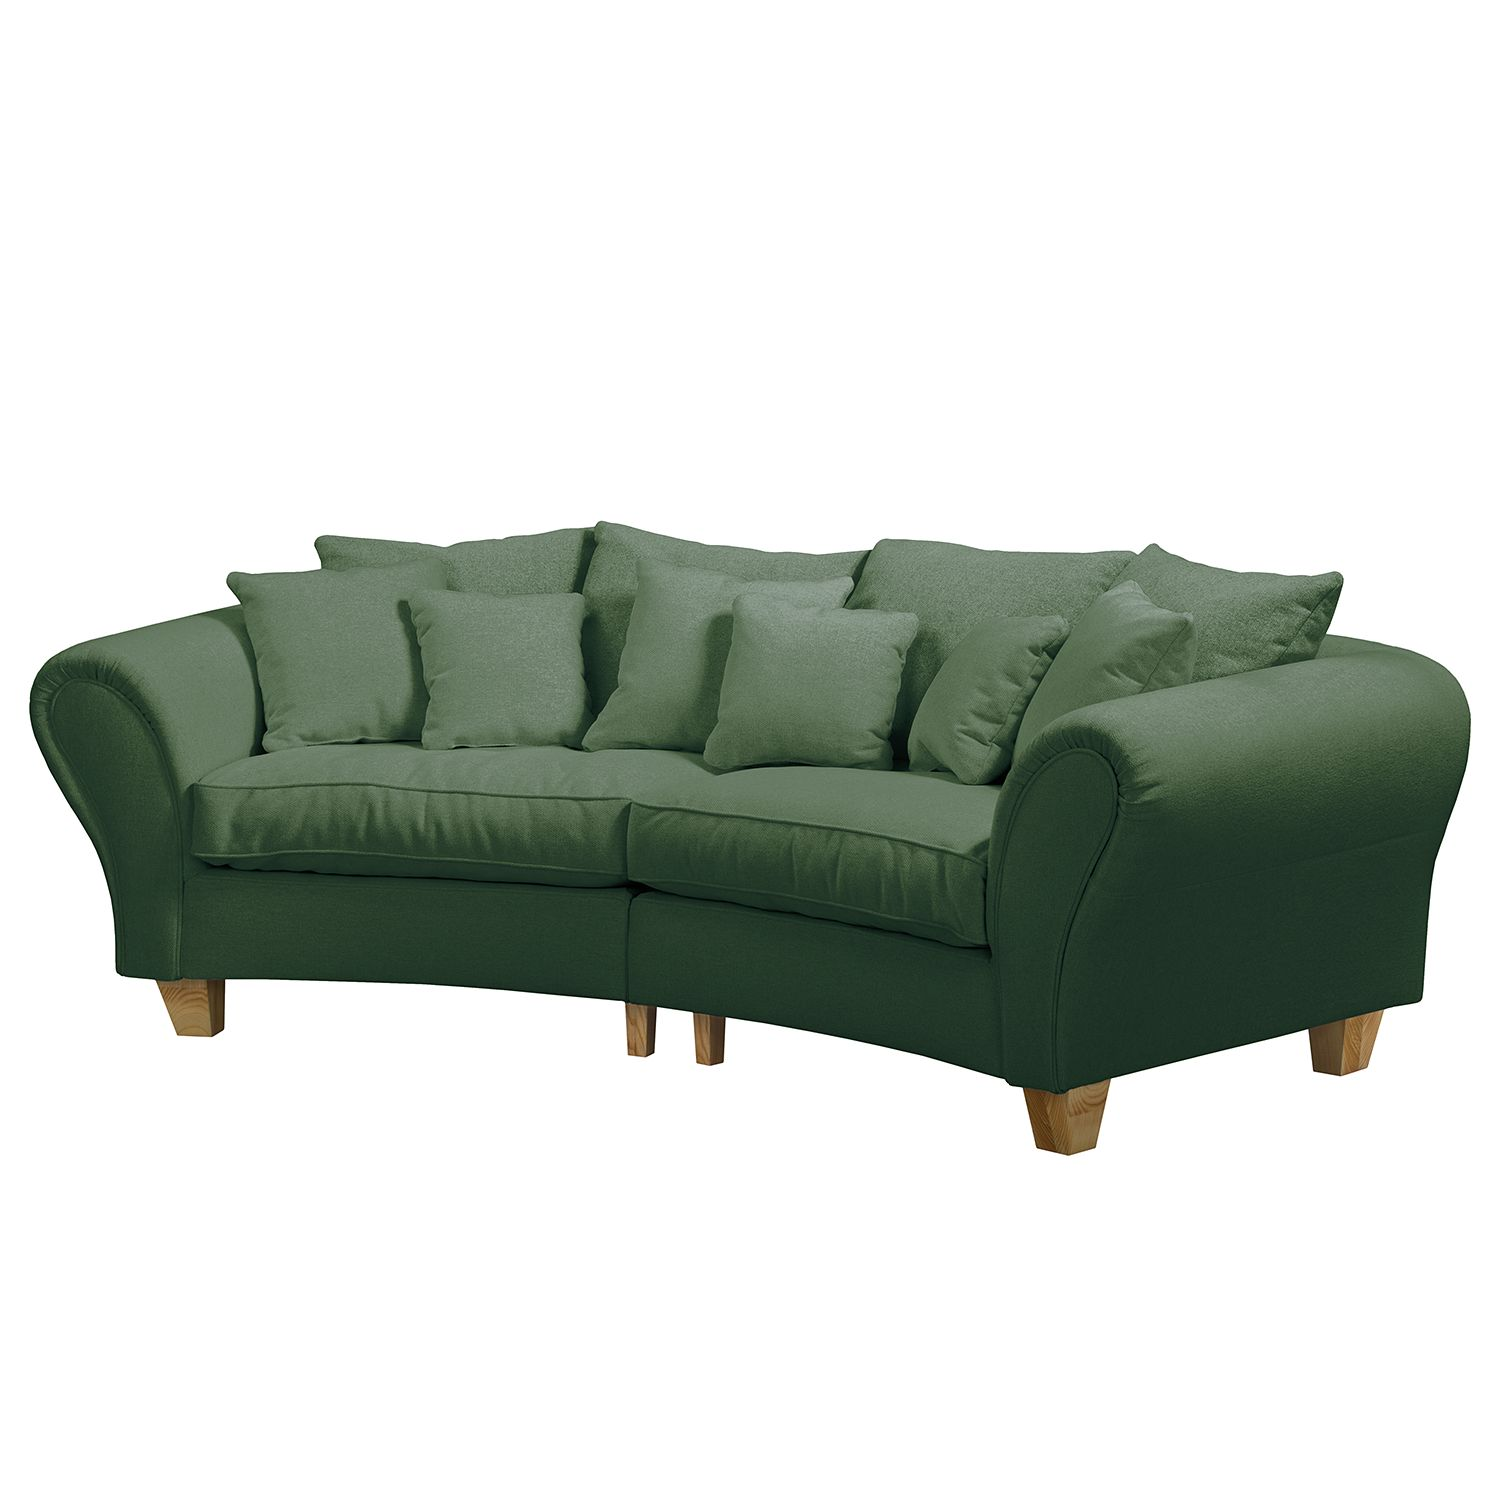 Bigsofa Blair Big Sofa Naomi Home24 Sofa Ideas